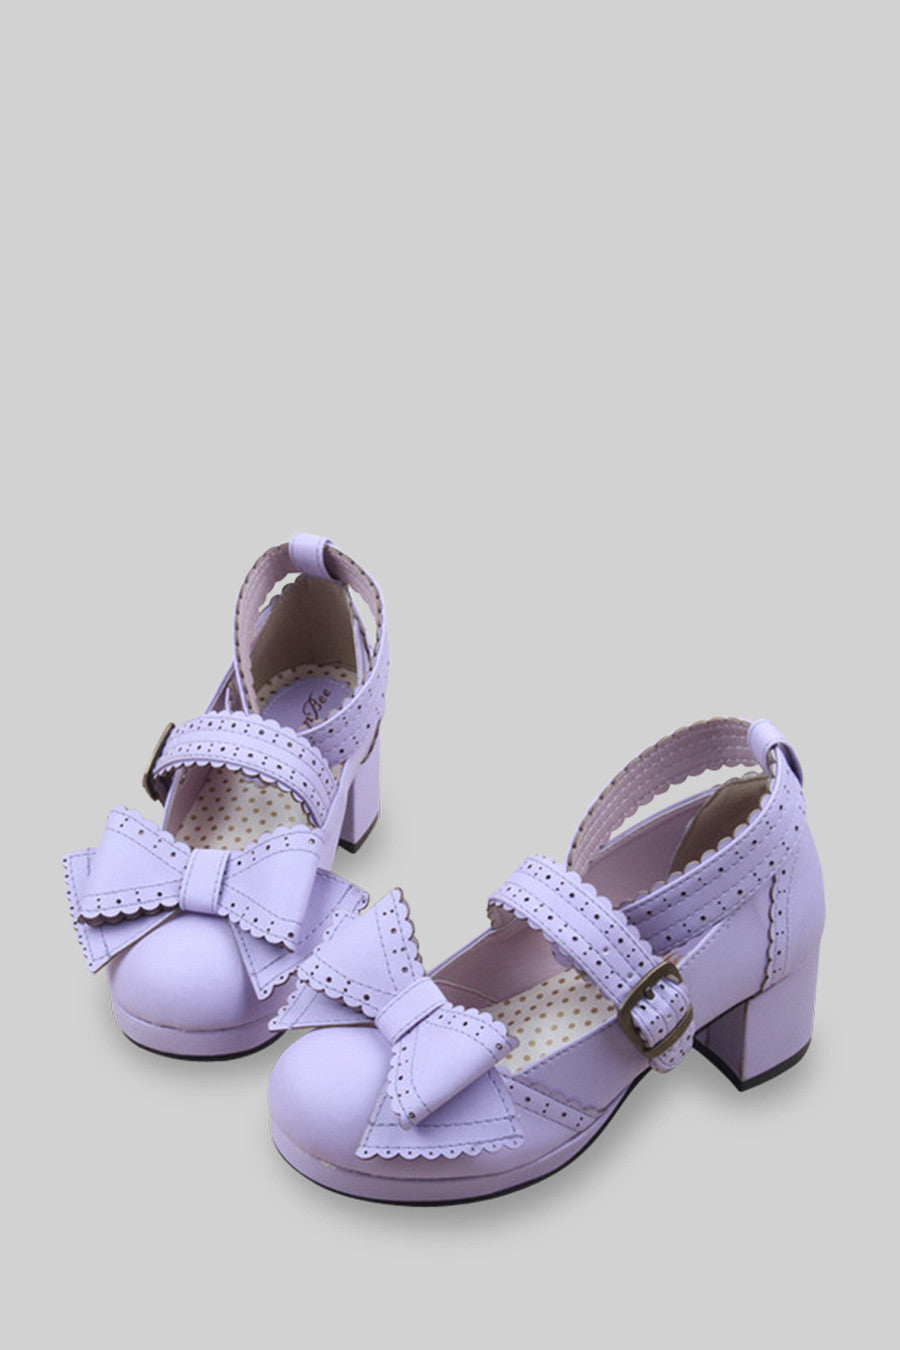 8d55fba1de8e Lolita Platform Shoes In Lilac. Tap to expand